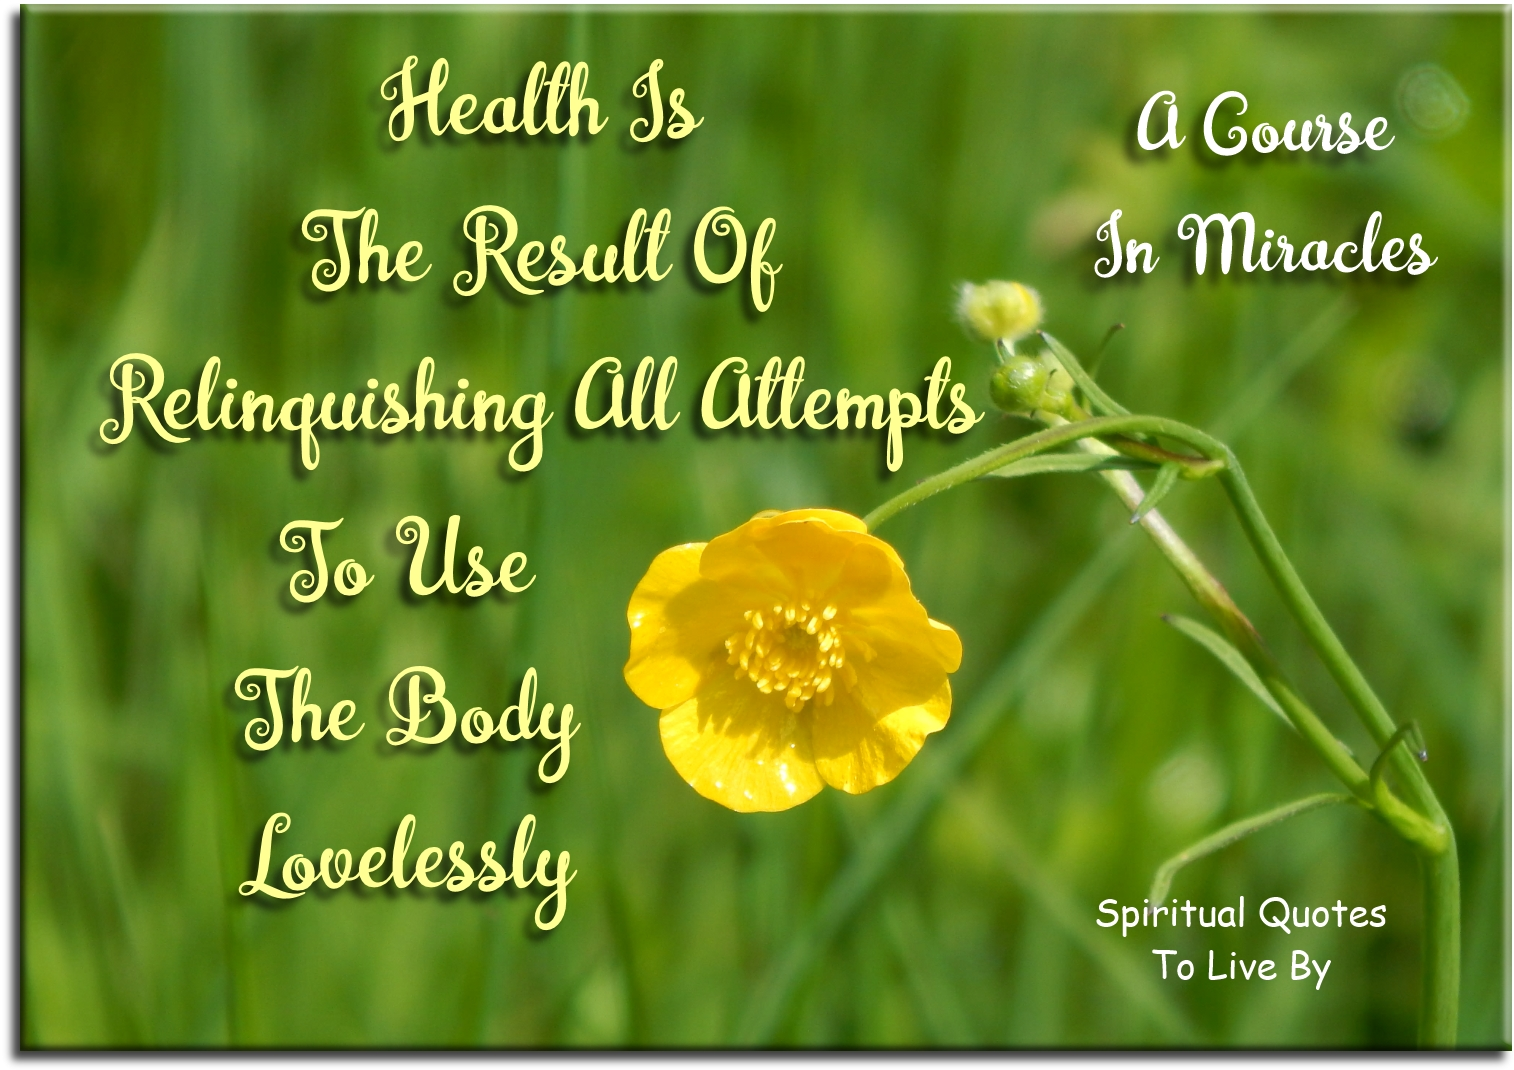 A Course In Miracles quote: Health is the result of relinquishing all attempts to use the body lovelessly. - Spiritual Quotes To Live By